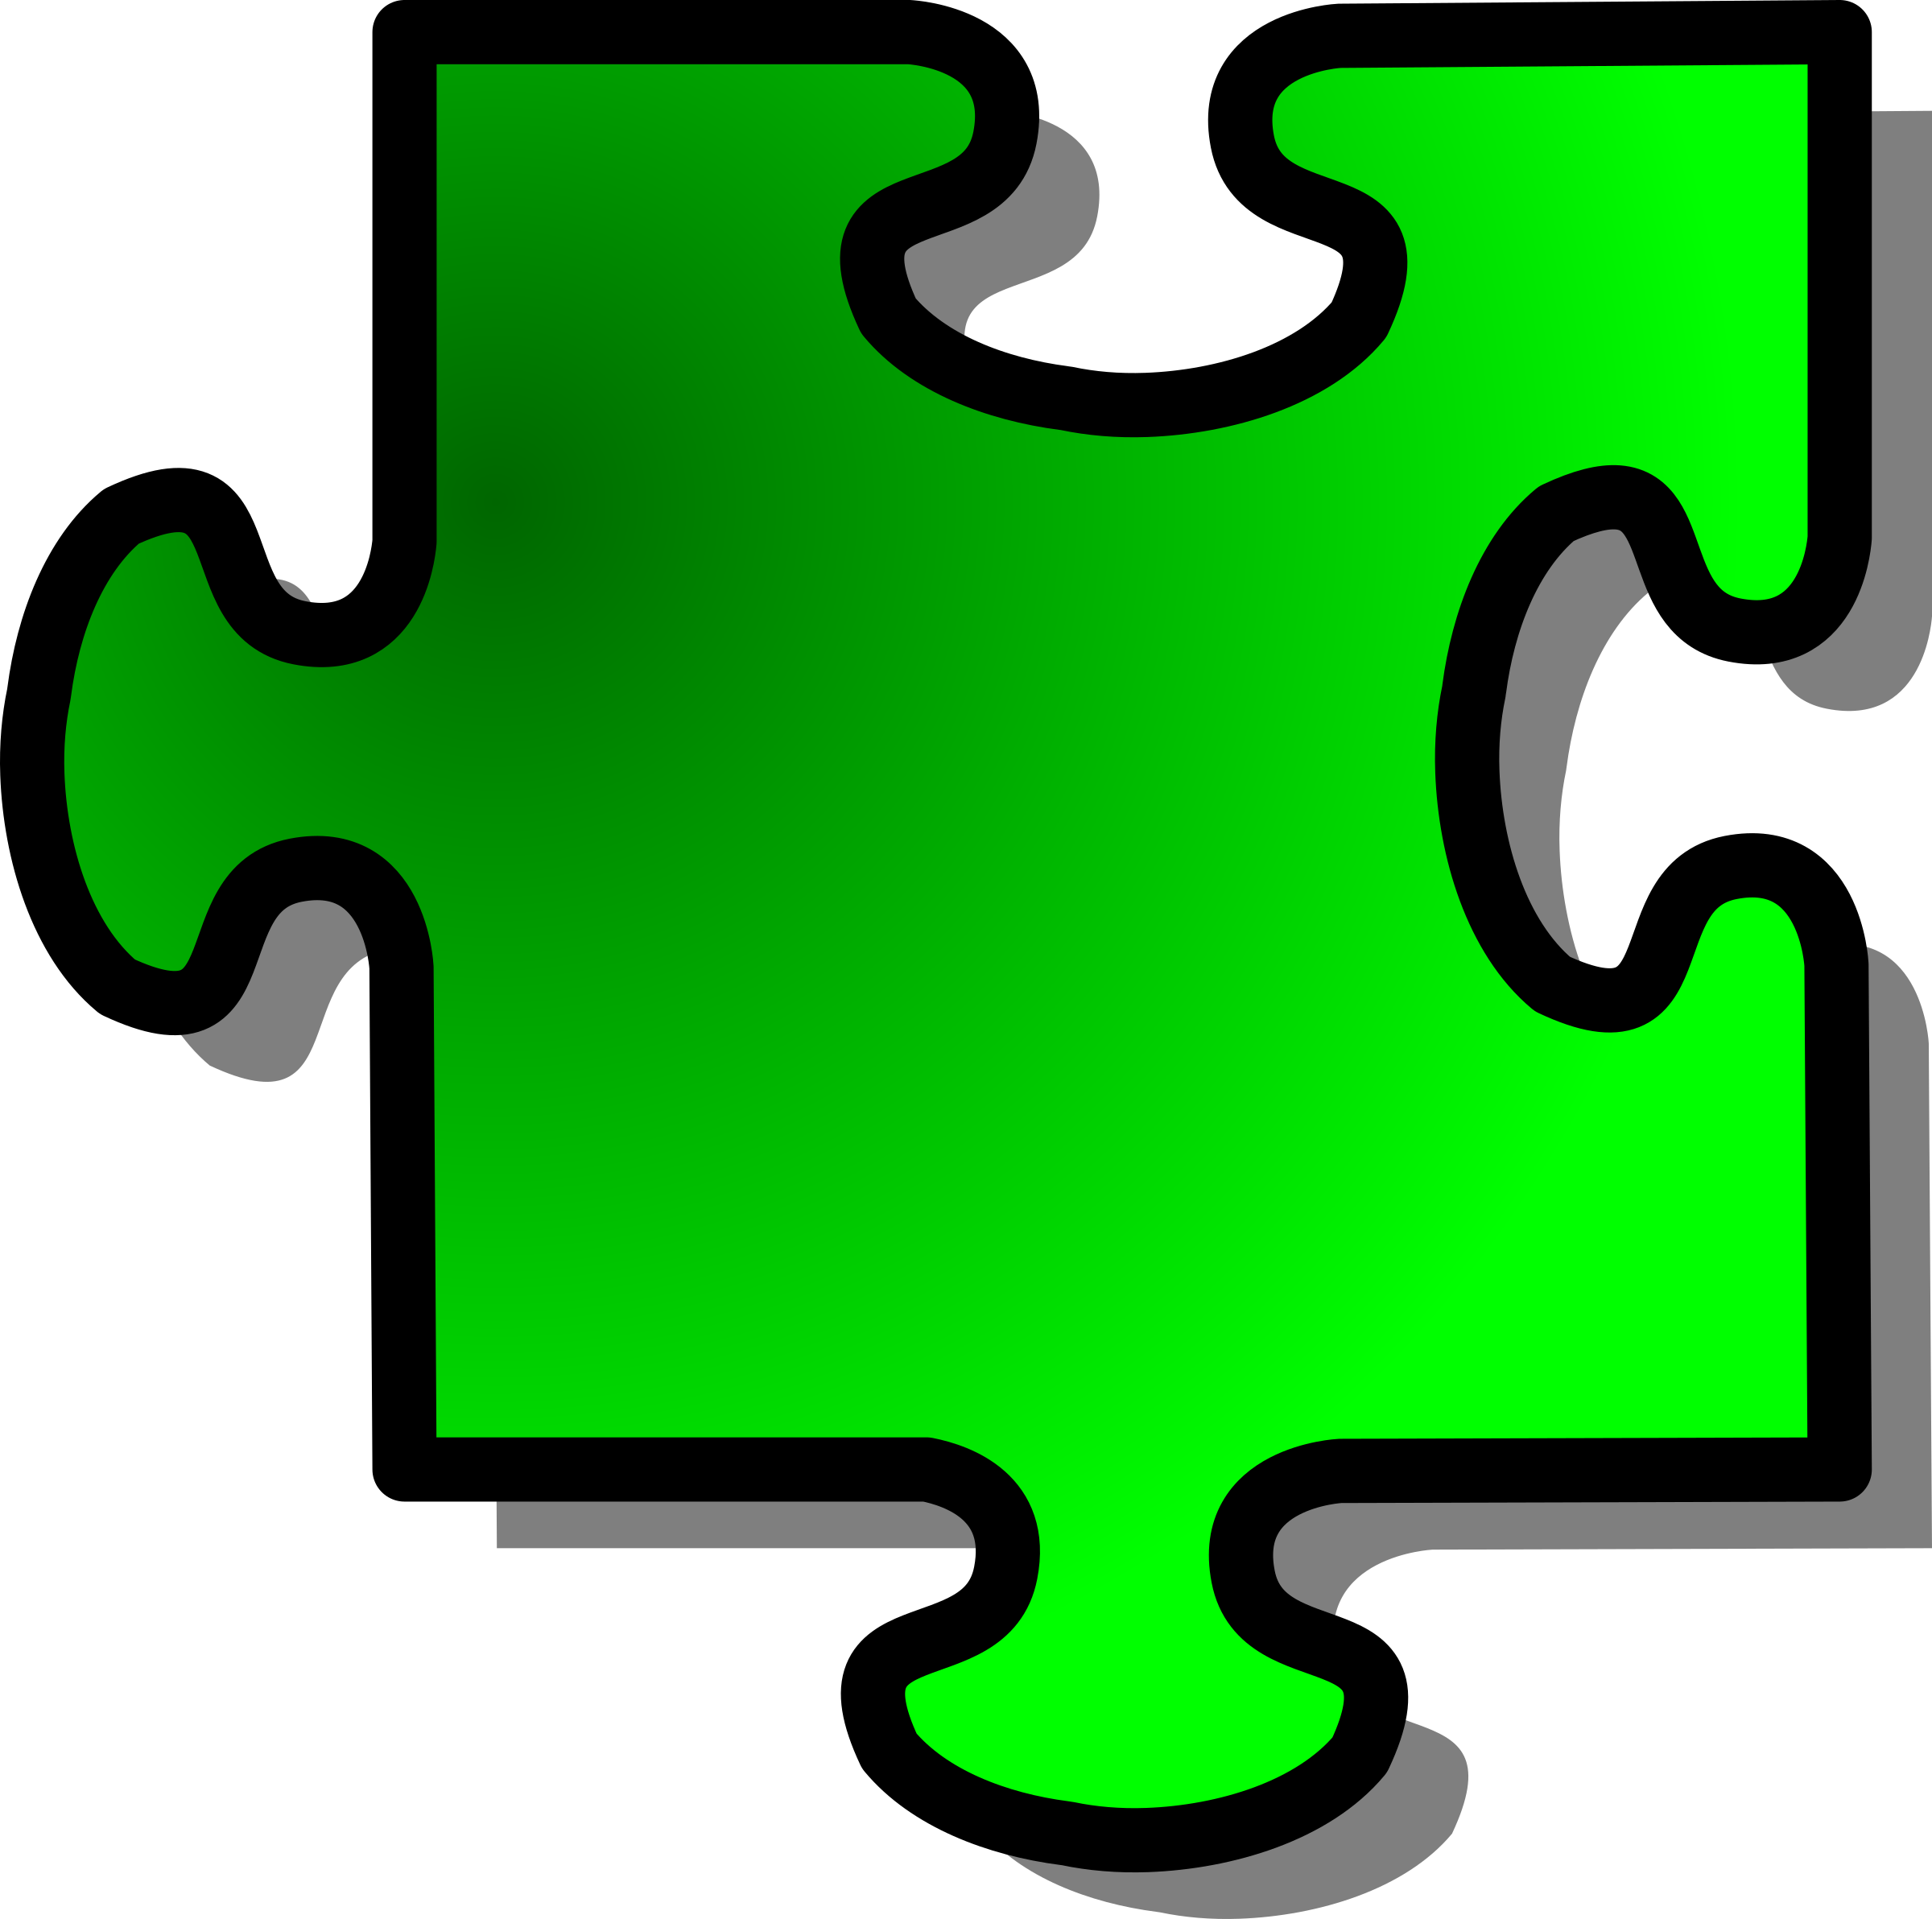 Green Jigsaw piece 11 by nicubunu